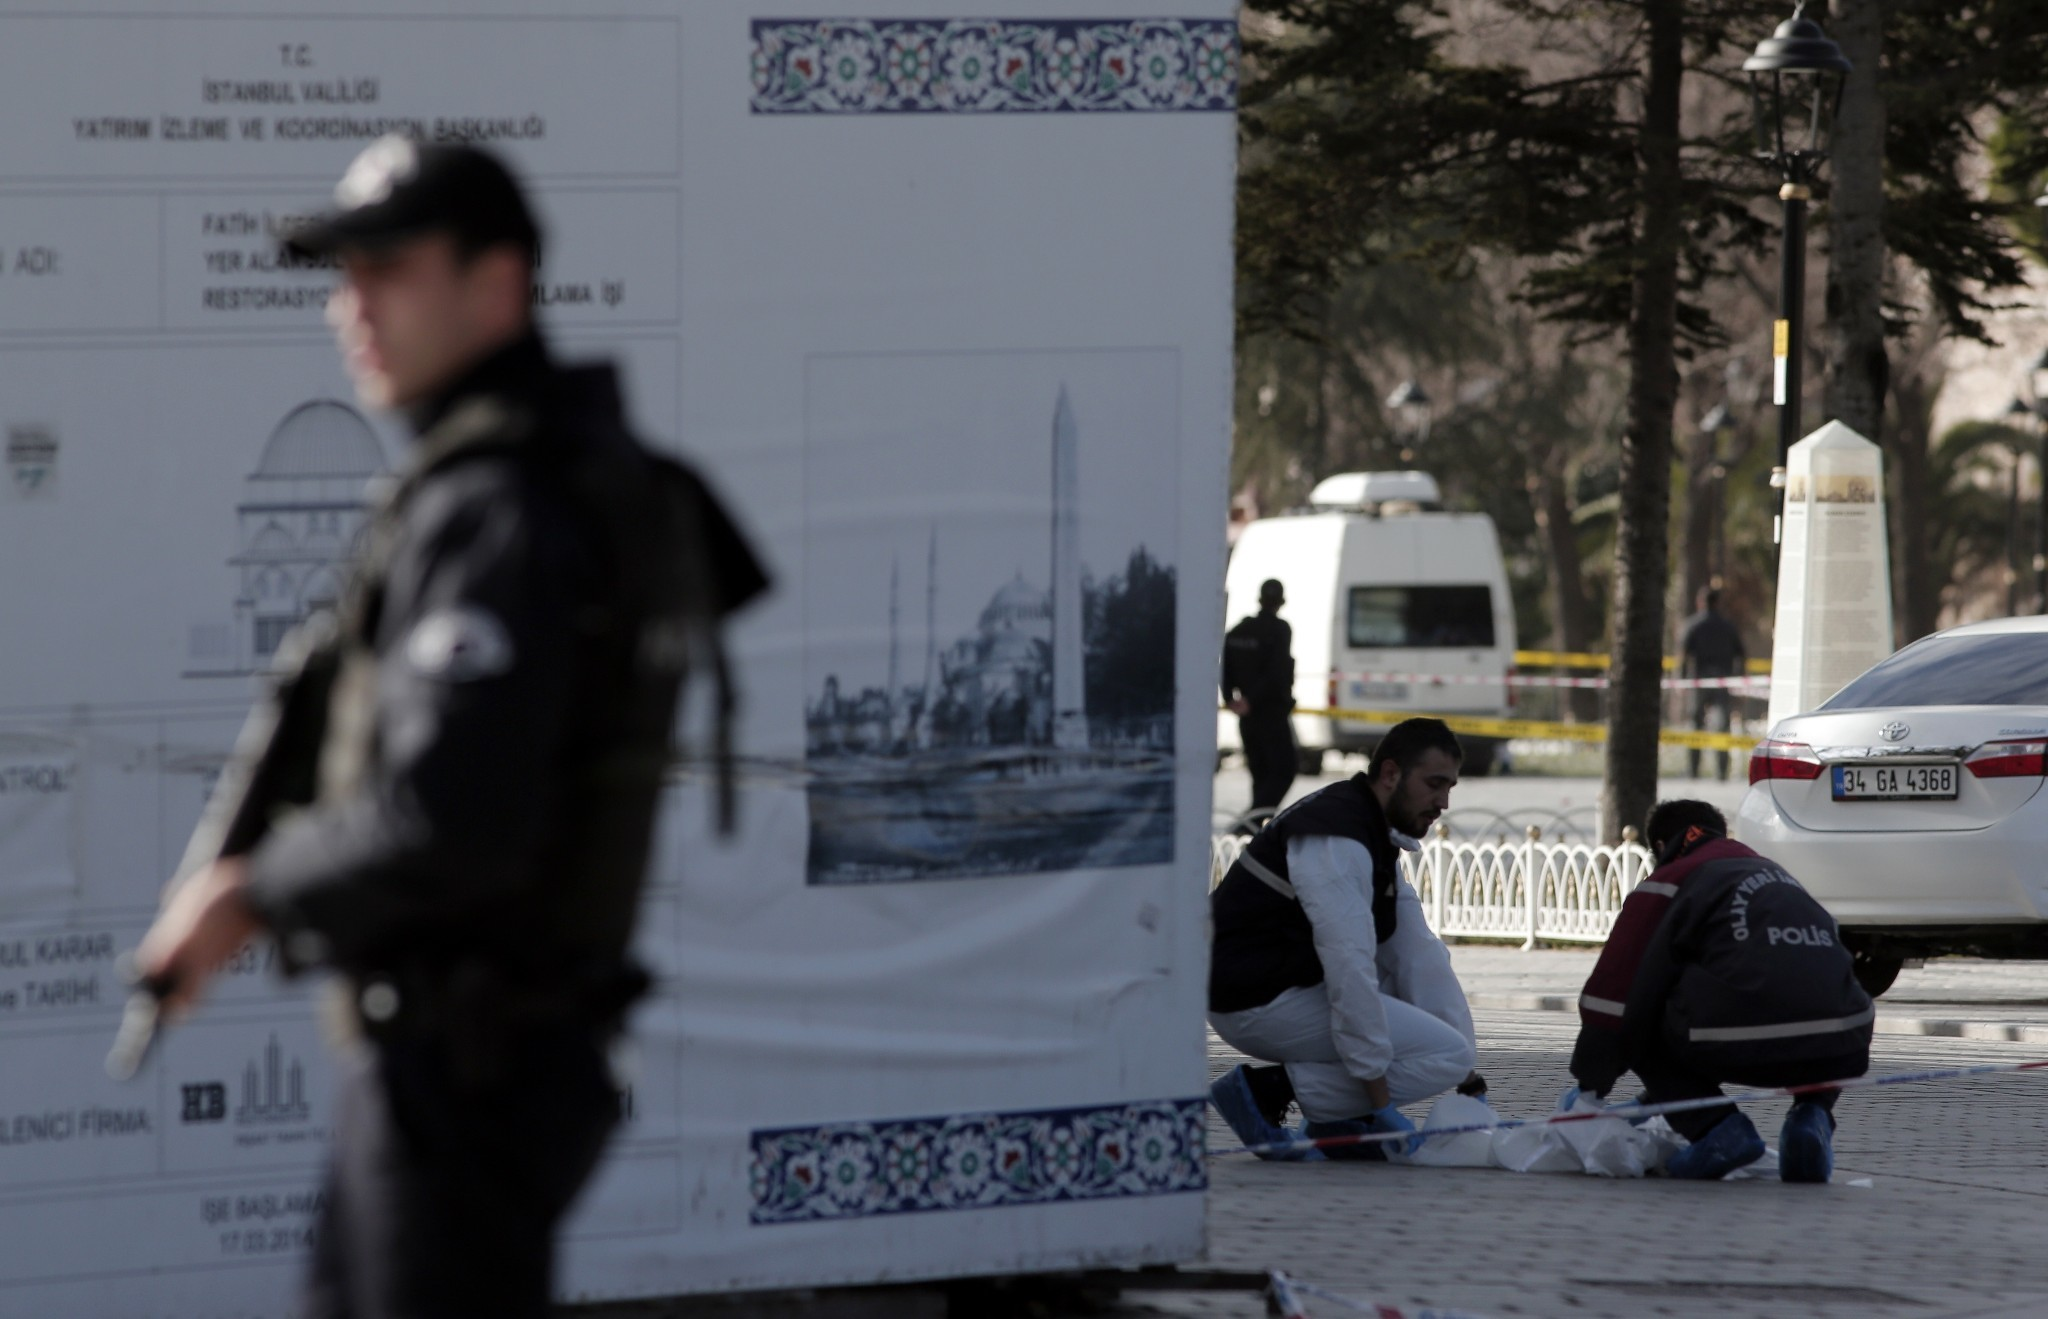 Suicide bomber kills 10, wounds 15 in Istanbul tourist area